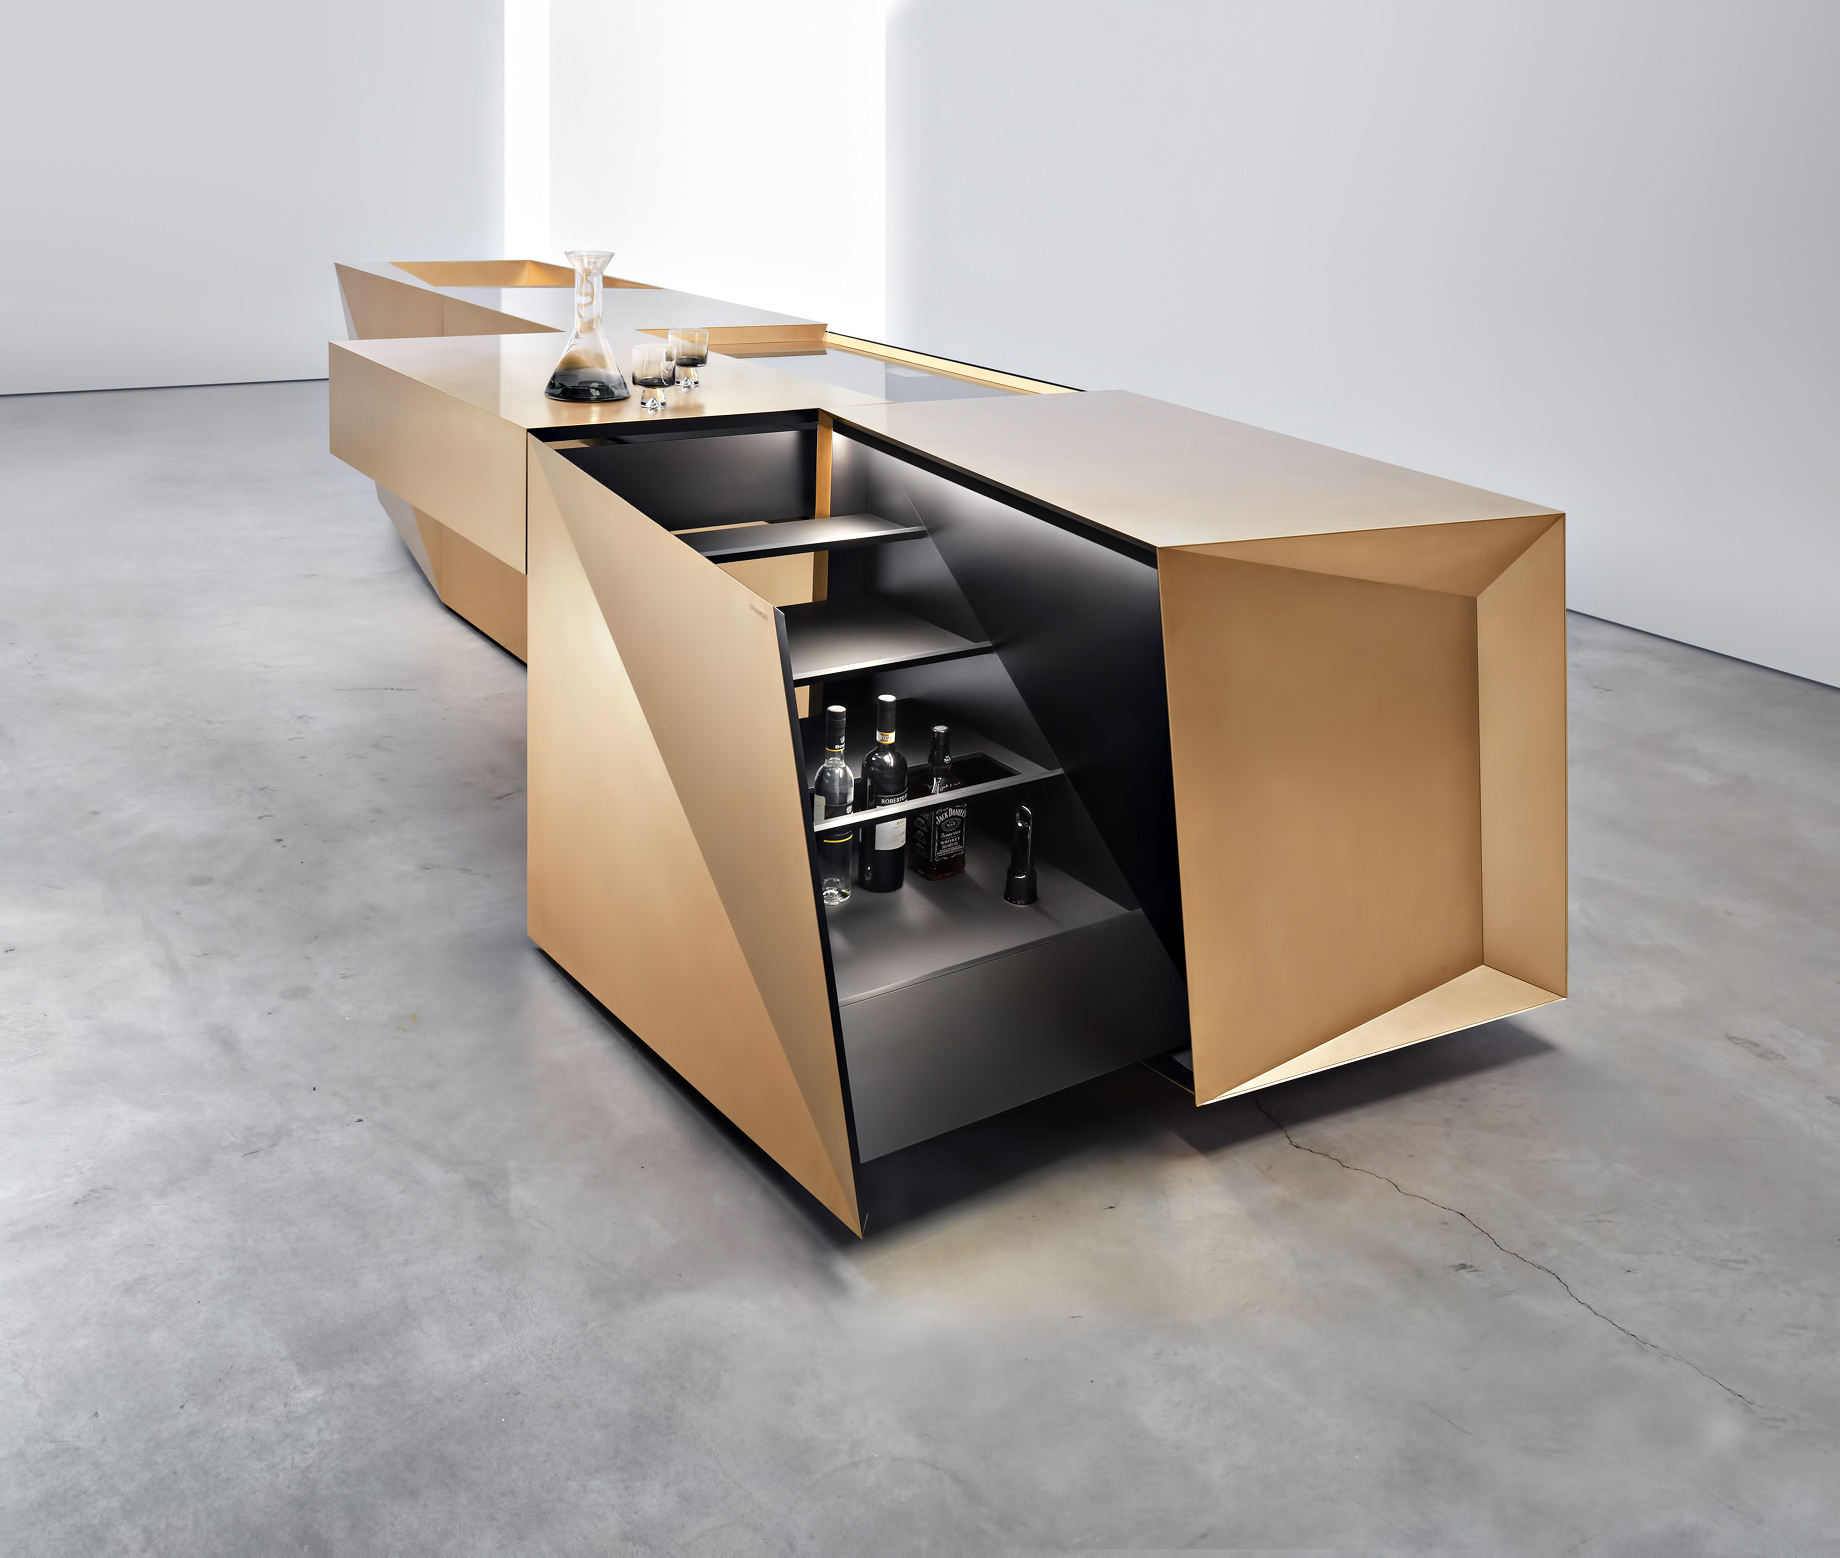 Iconic Steininger FOLD High Tech Kitchen Block Design Inspired by Origami – Hob and bar open